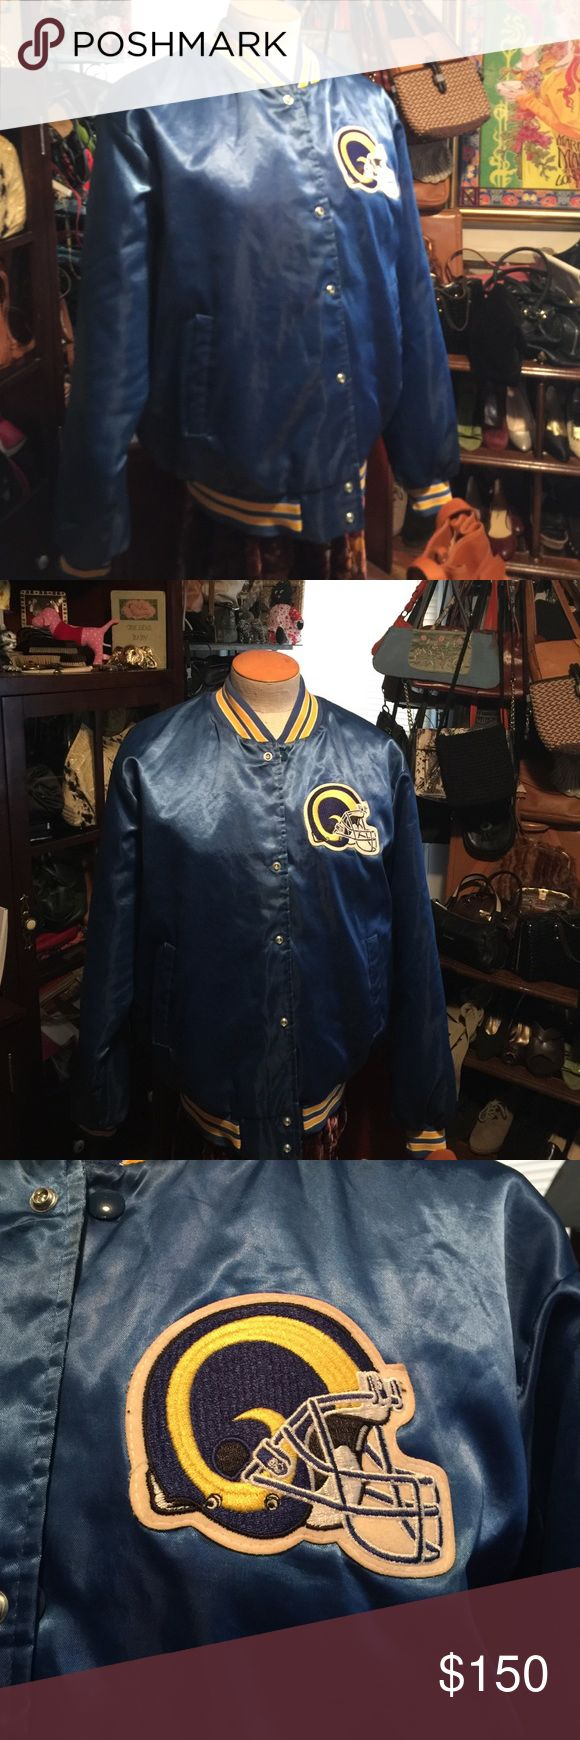 Amazing 80's vintage LA Rams satin jacket This is a vintage 80's LA Rams satin jacket made by Chalk Line. It is somewhat rare to find one of these in this condition from the original Rams team. After '94 the Rams moved to Saint Louis. 22 years later they went back to LA and began to play there again in 2016. This one is original and in excellent shape. No tears or snags. There is one light small stain on the lining but that's it. The tag and inside has yellowed slightly from age. Runs small…